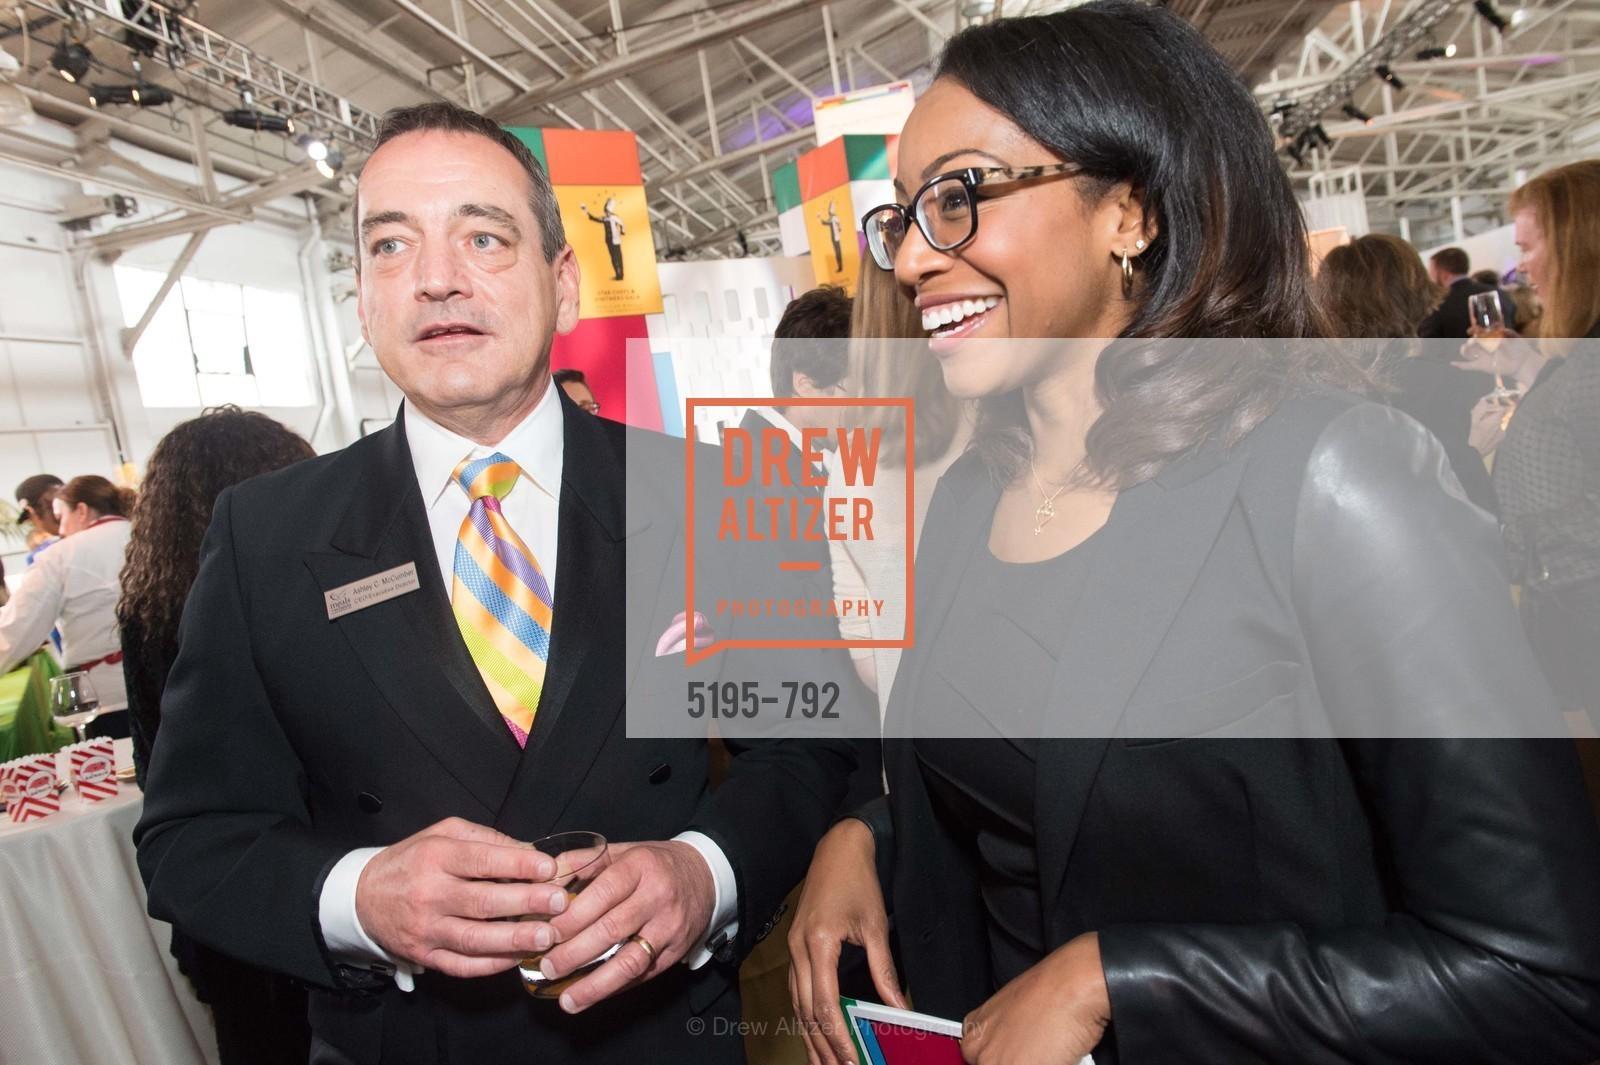 Ashley McCumber, Malia Cohen, MEALS ON WHEELS OF SAN FRANCISCO'S 28th Annual Star Chefs and Vintners Gala, US, April 20th, 2015,Drew Altizer, Drew Altizer Photography, full-service agency, private events, San Francisco photographer, photographer california